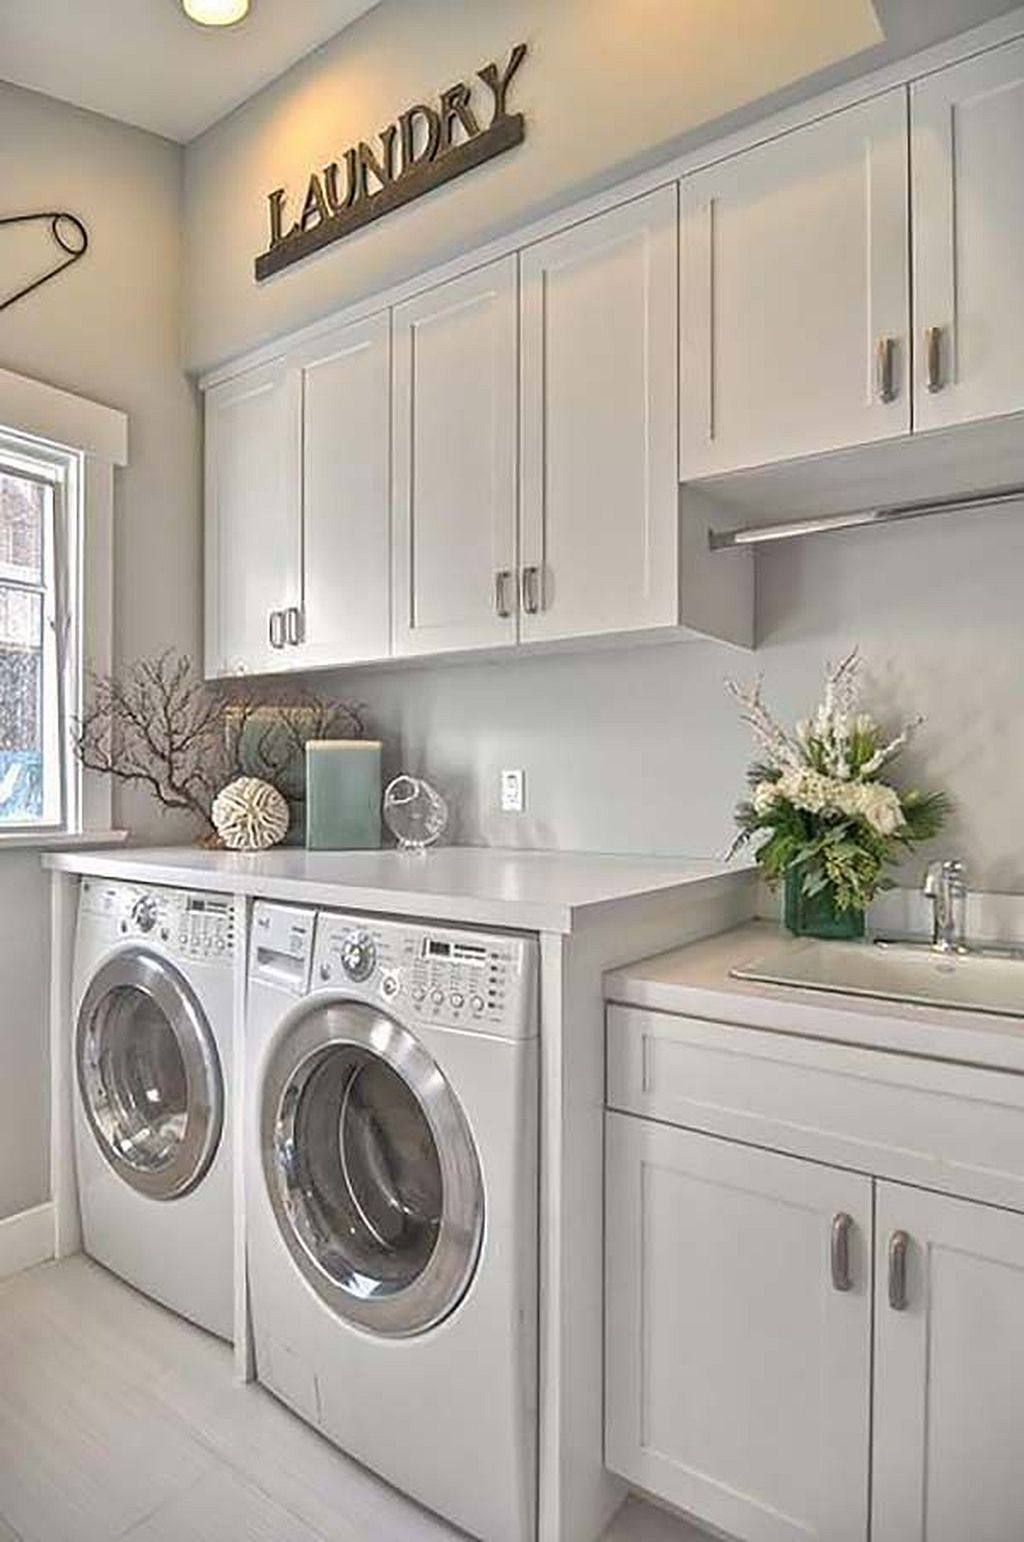 Great Ideas To Arrange Small Space For Mudroom Laundry Laundry